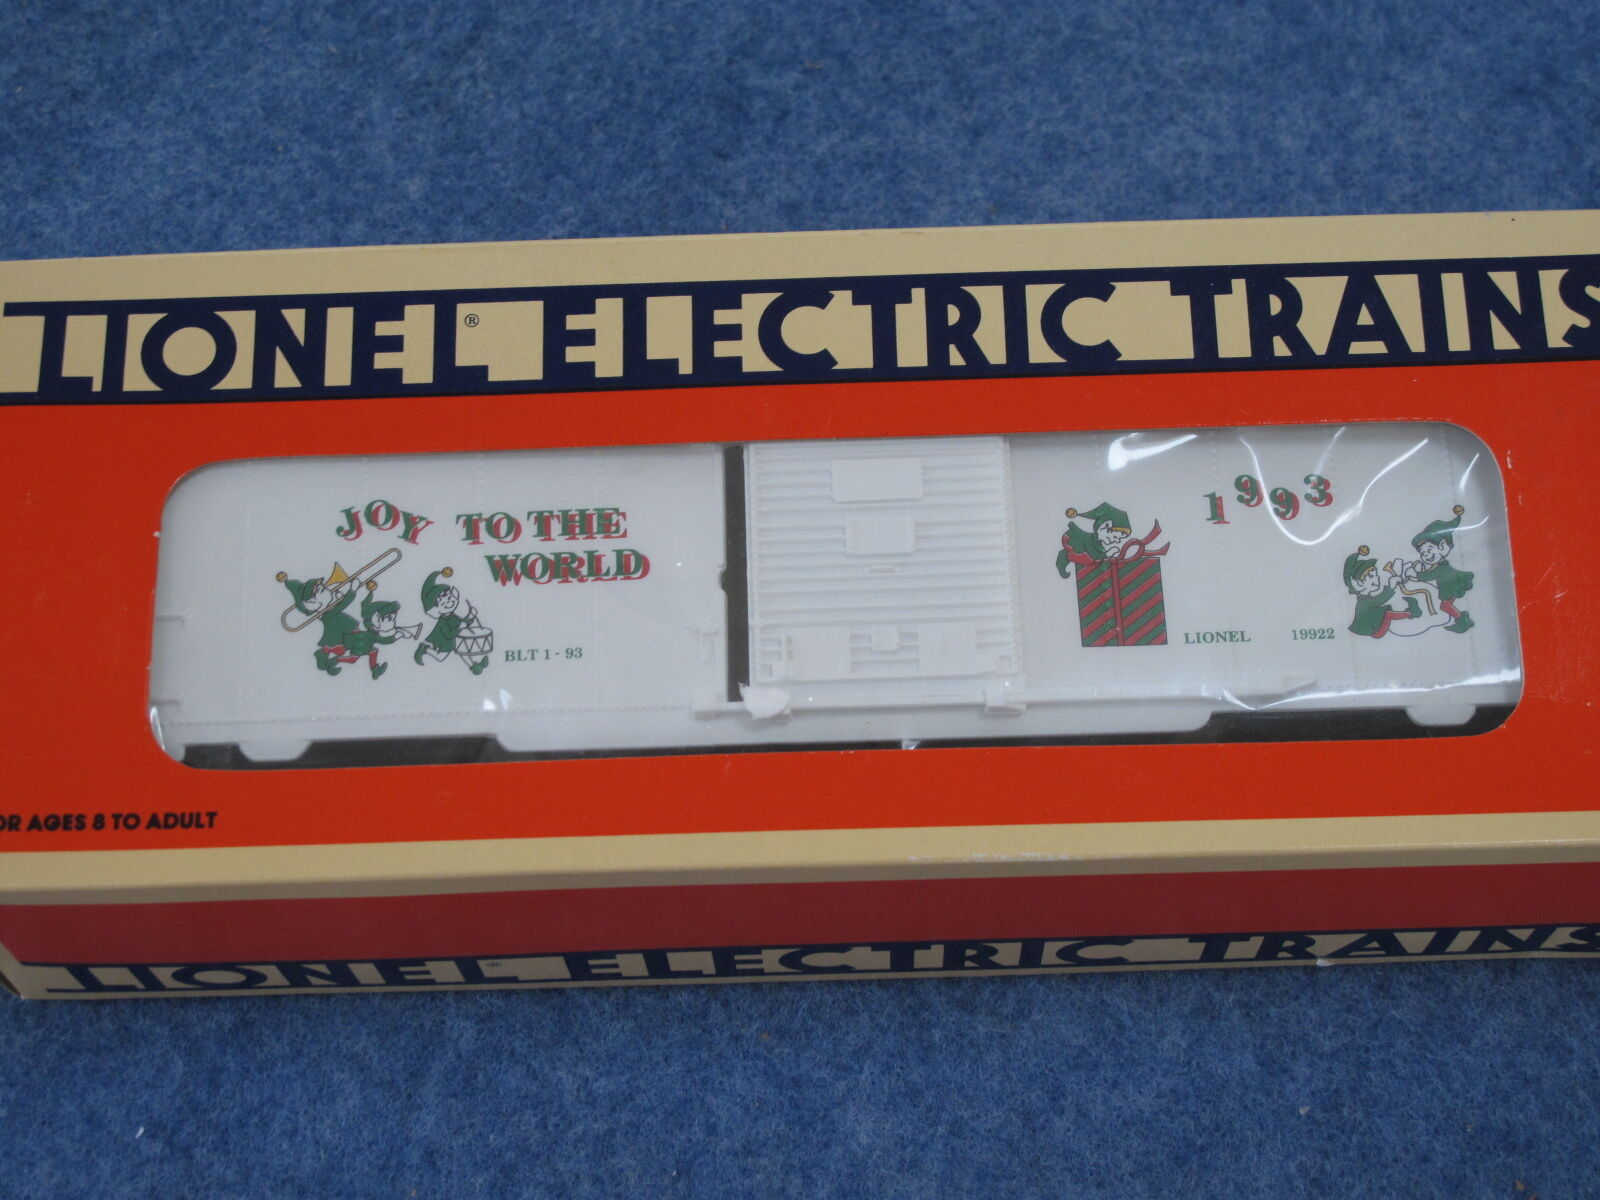 1993 Lionel 6-19922 Christmas Box Car Joy to the World New in Box L1618